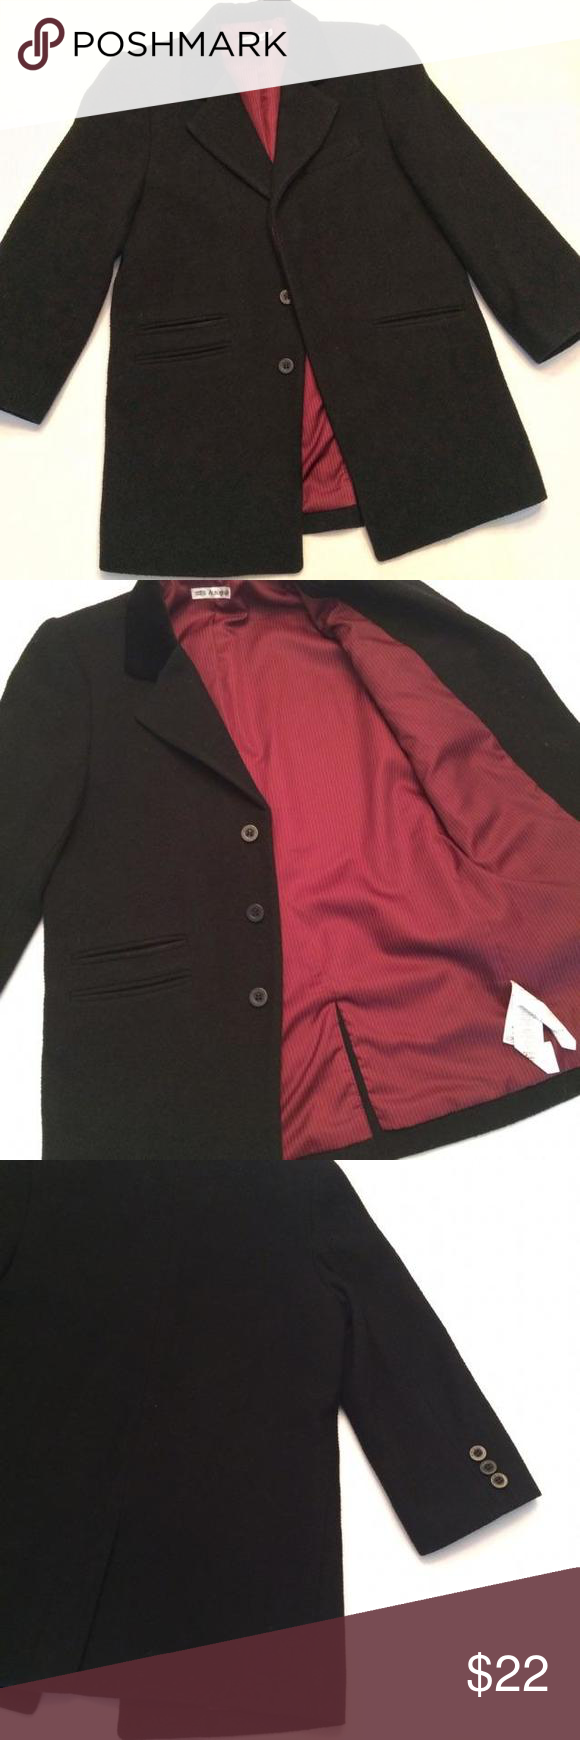 Marks & Spencer Black Wool Jacket Gorgeous single breasted wool coat with 3 hidden button closures. Fully lined in burgundy polyester with black velvet collar for just an extra touch of style. 3 pocket front. Dry Clean Only. Full dress jacket but cute enough to wear with jeans and kicks.size 5/6 Shirts & Tops